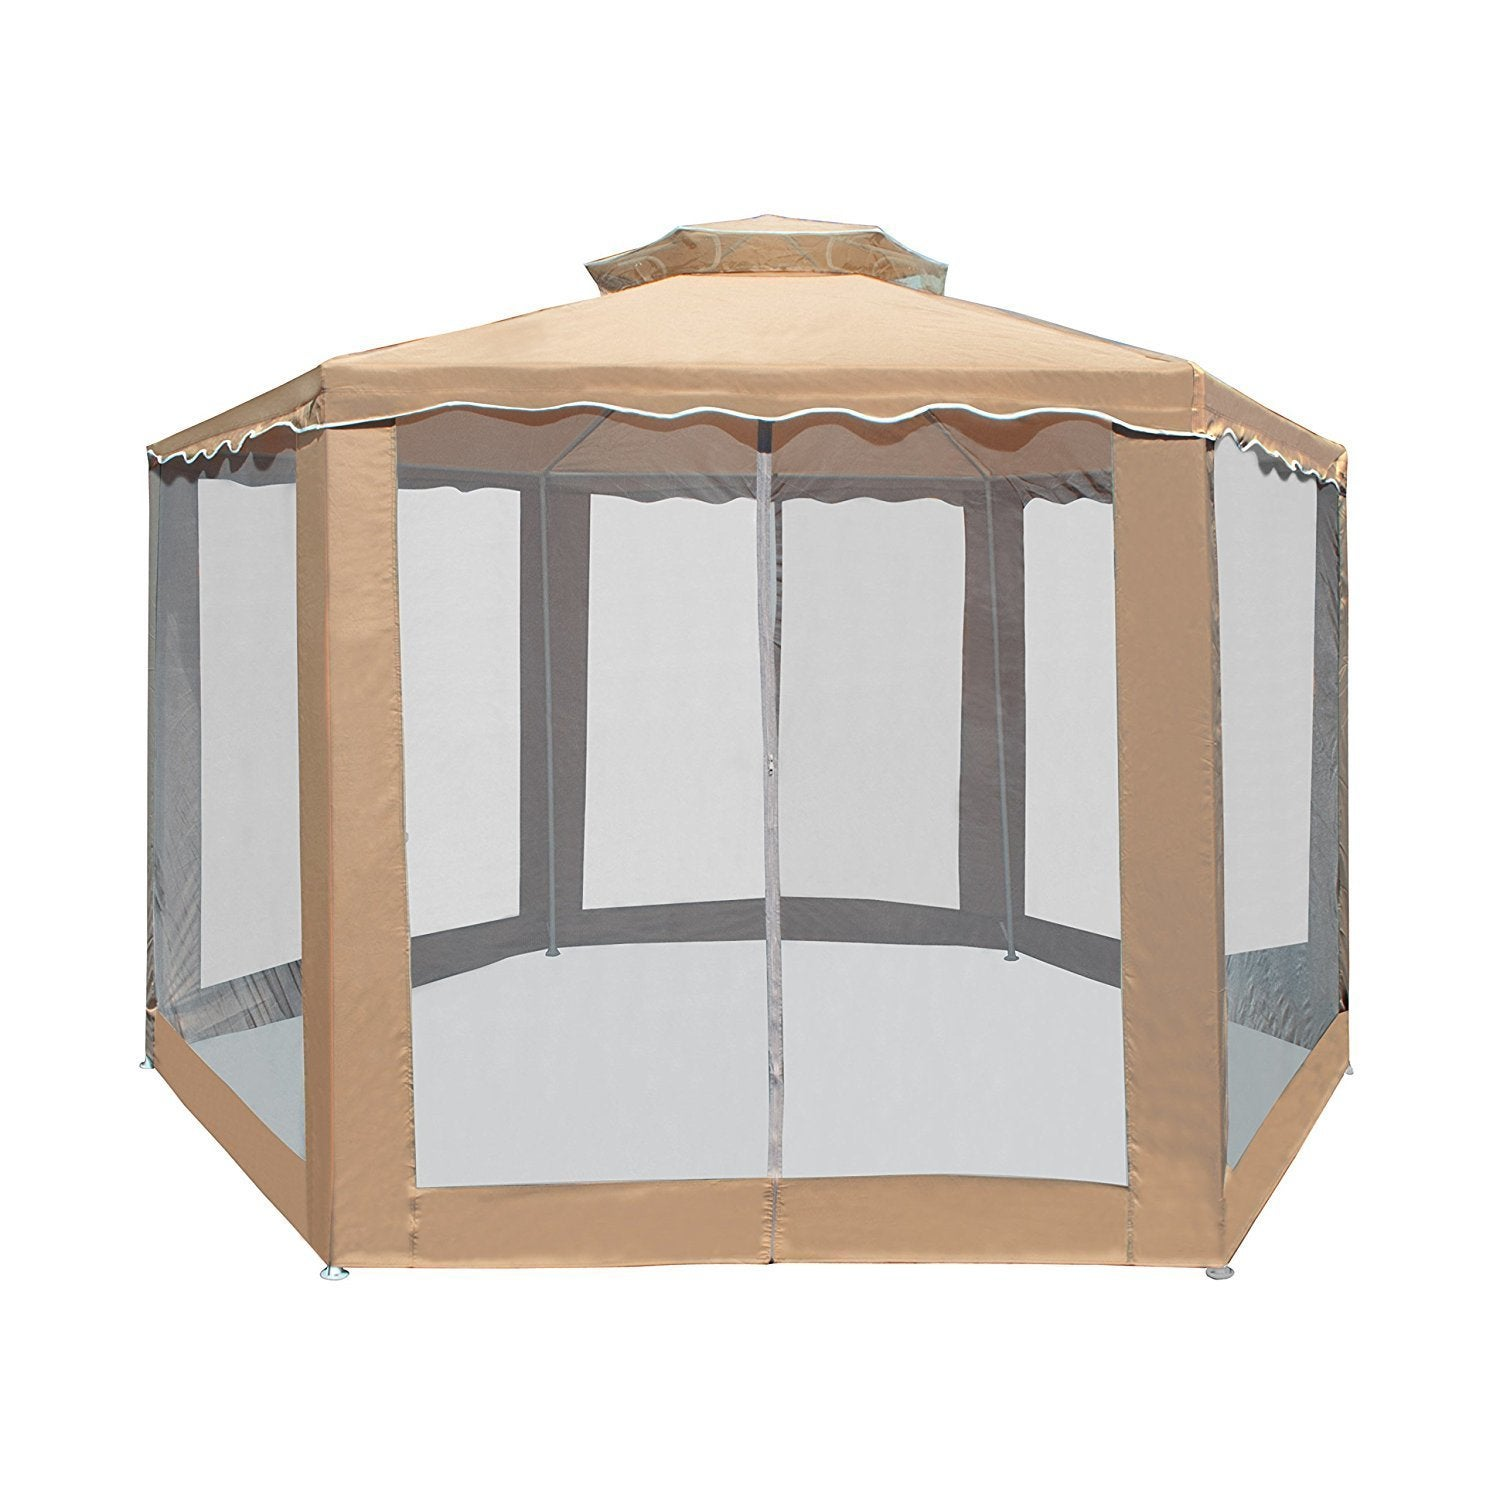 Shop aleko double roof hexagon patio gazebo with netting 6 5x6 5x6 5 ft on sale free shipping today overstock com 19208643